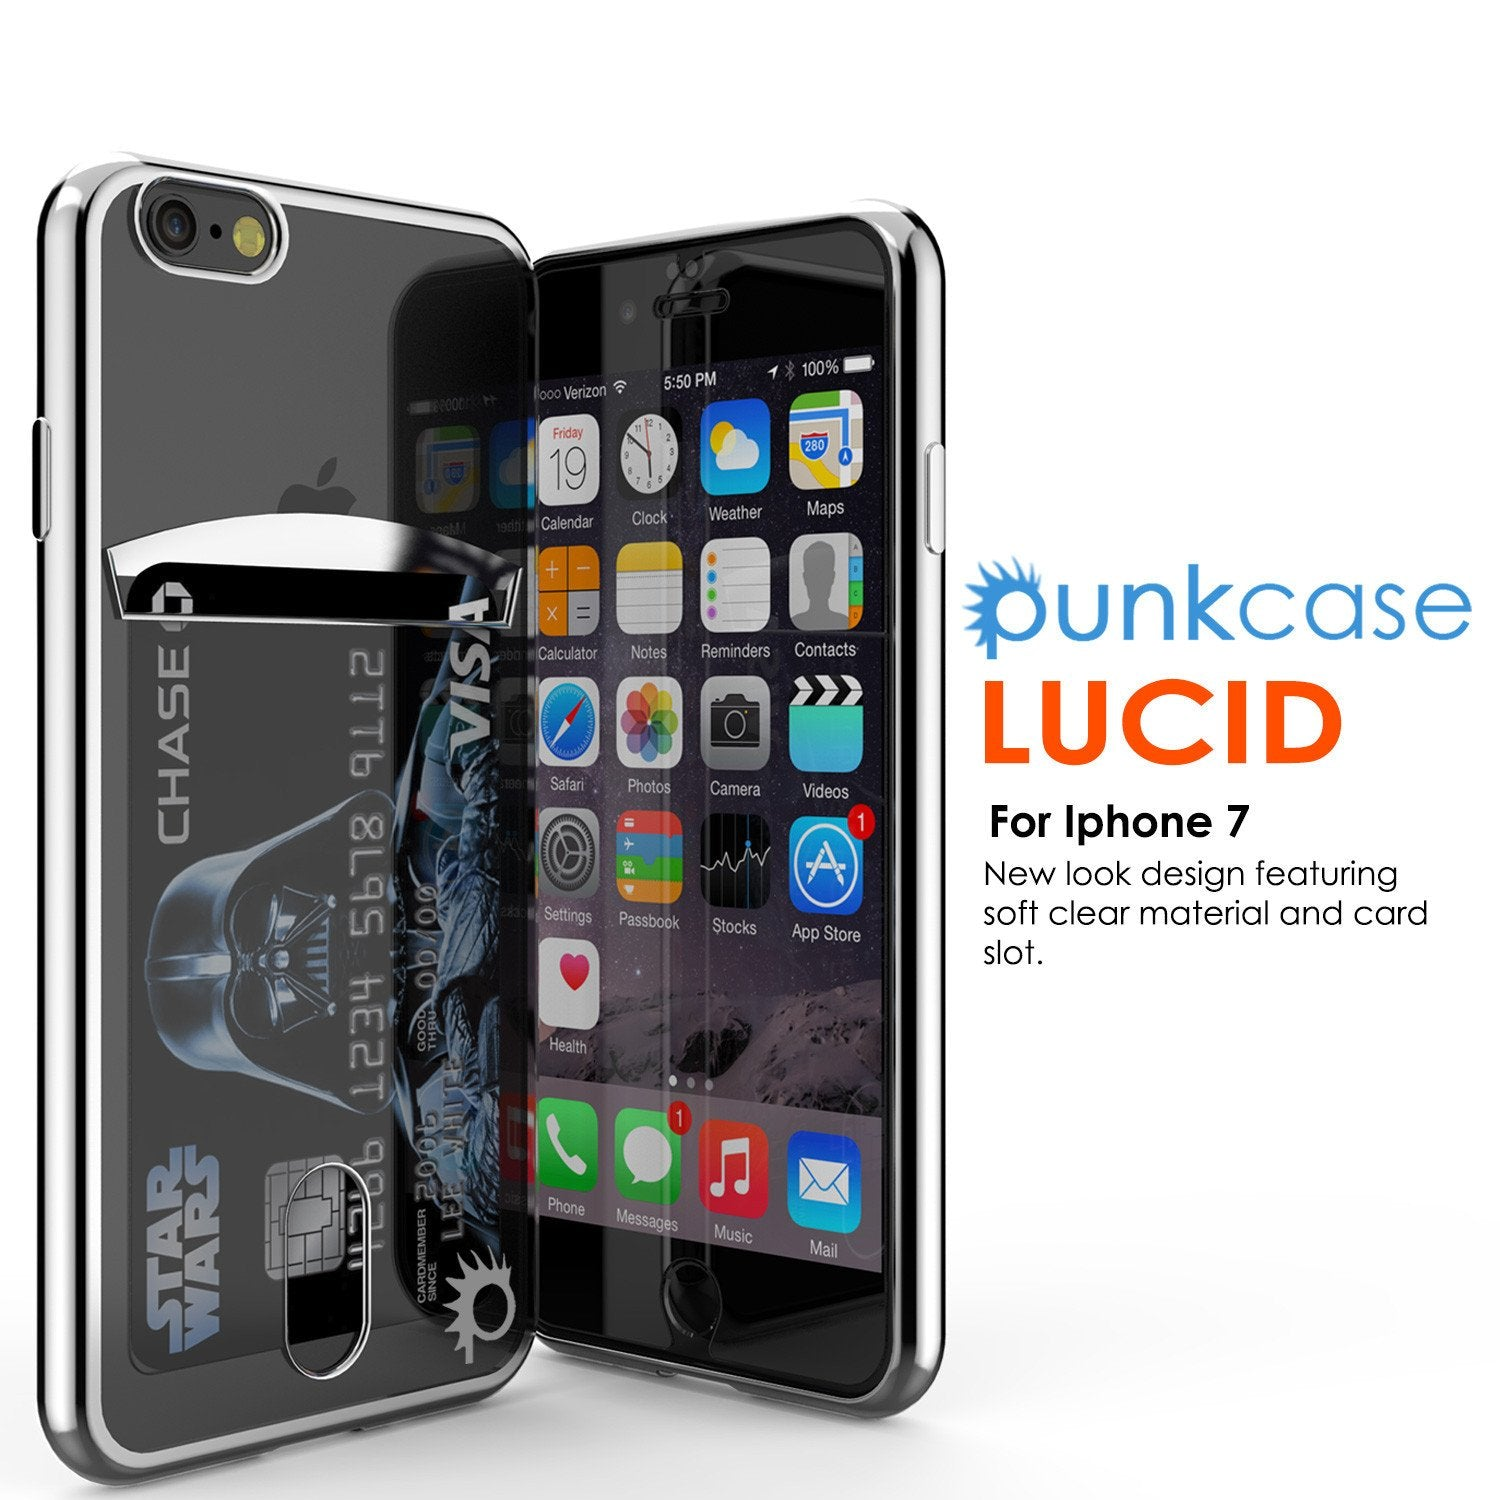 iPhone 7 Case, PUNKCASE® LUCID Silver Series for iPhone 7 Premium Impact Protective Armor Case Cover | Clear TPU | Lifetime Warranty Exchange | PUNK SHIELD Screen Protector | Ultra Fit